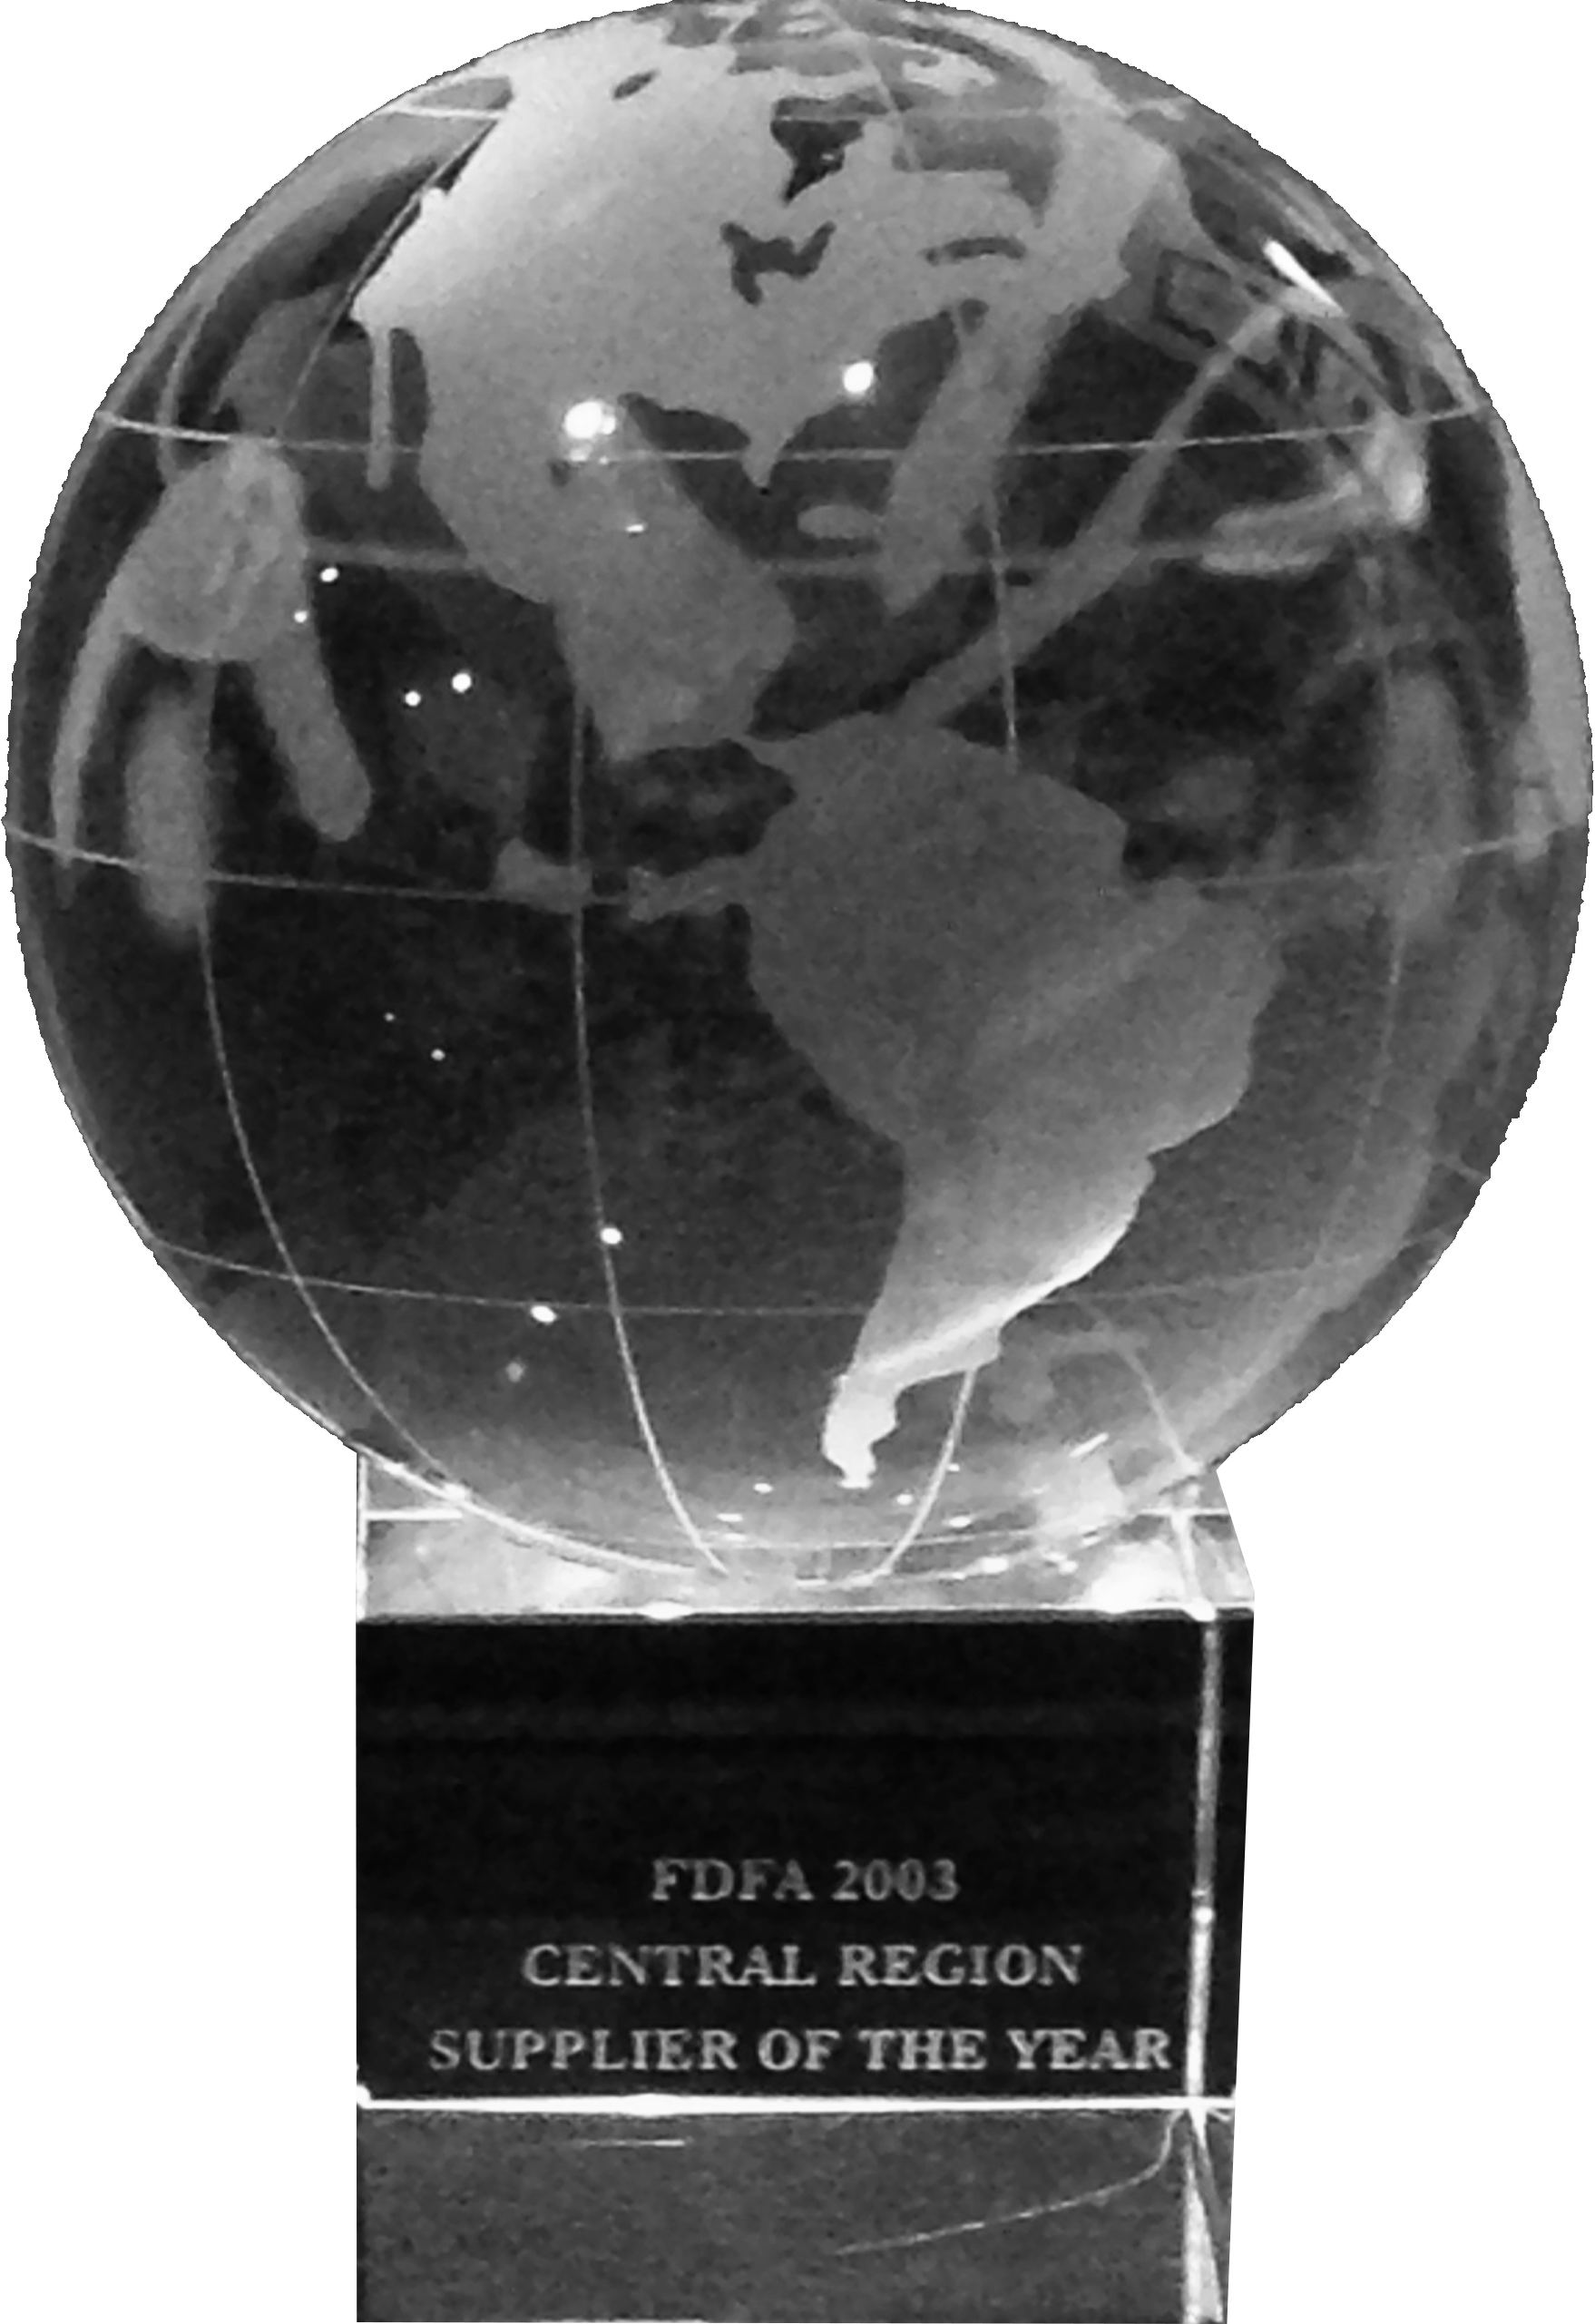 FDFA Central Region Supplier of the Year Award